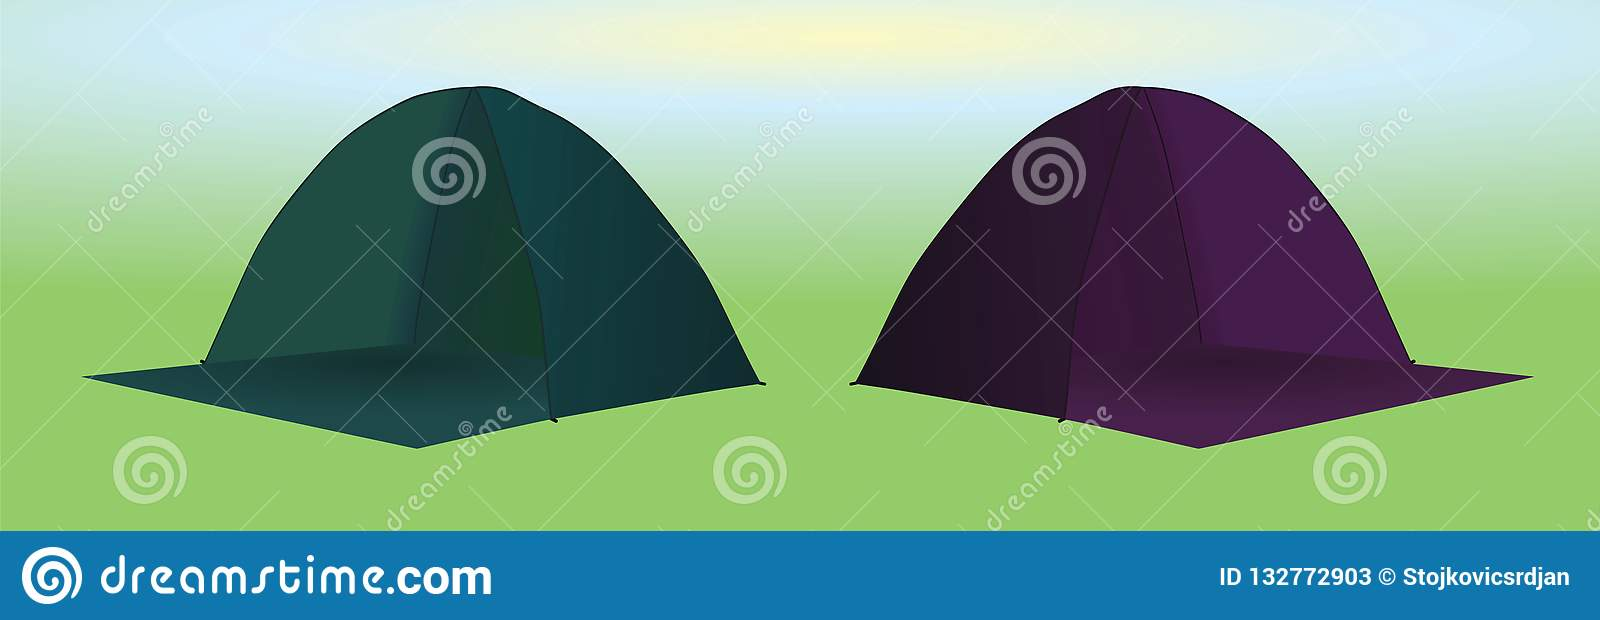 Camping tents green and purple